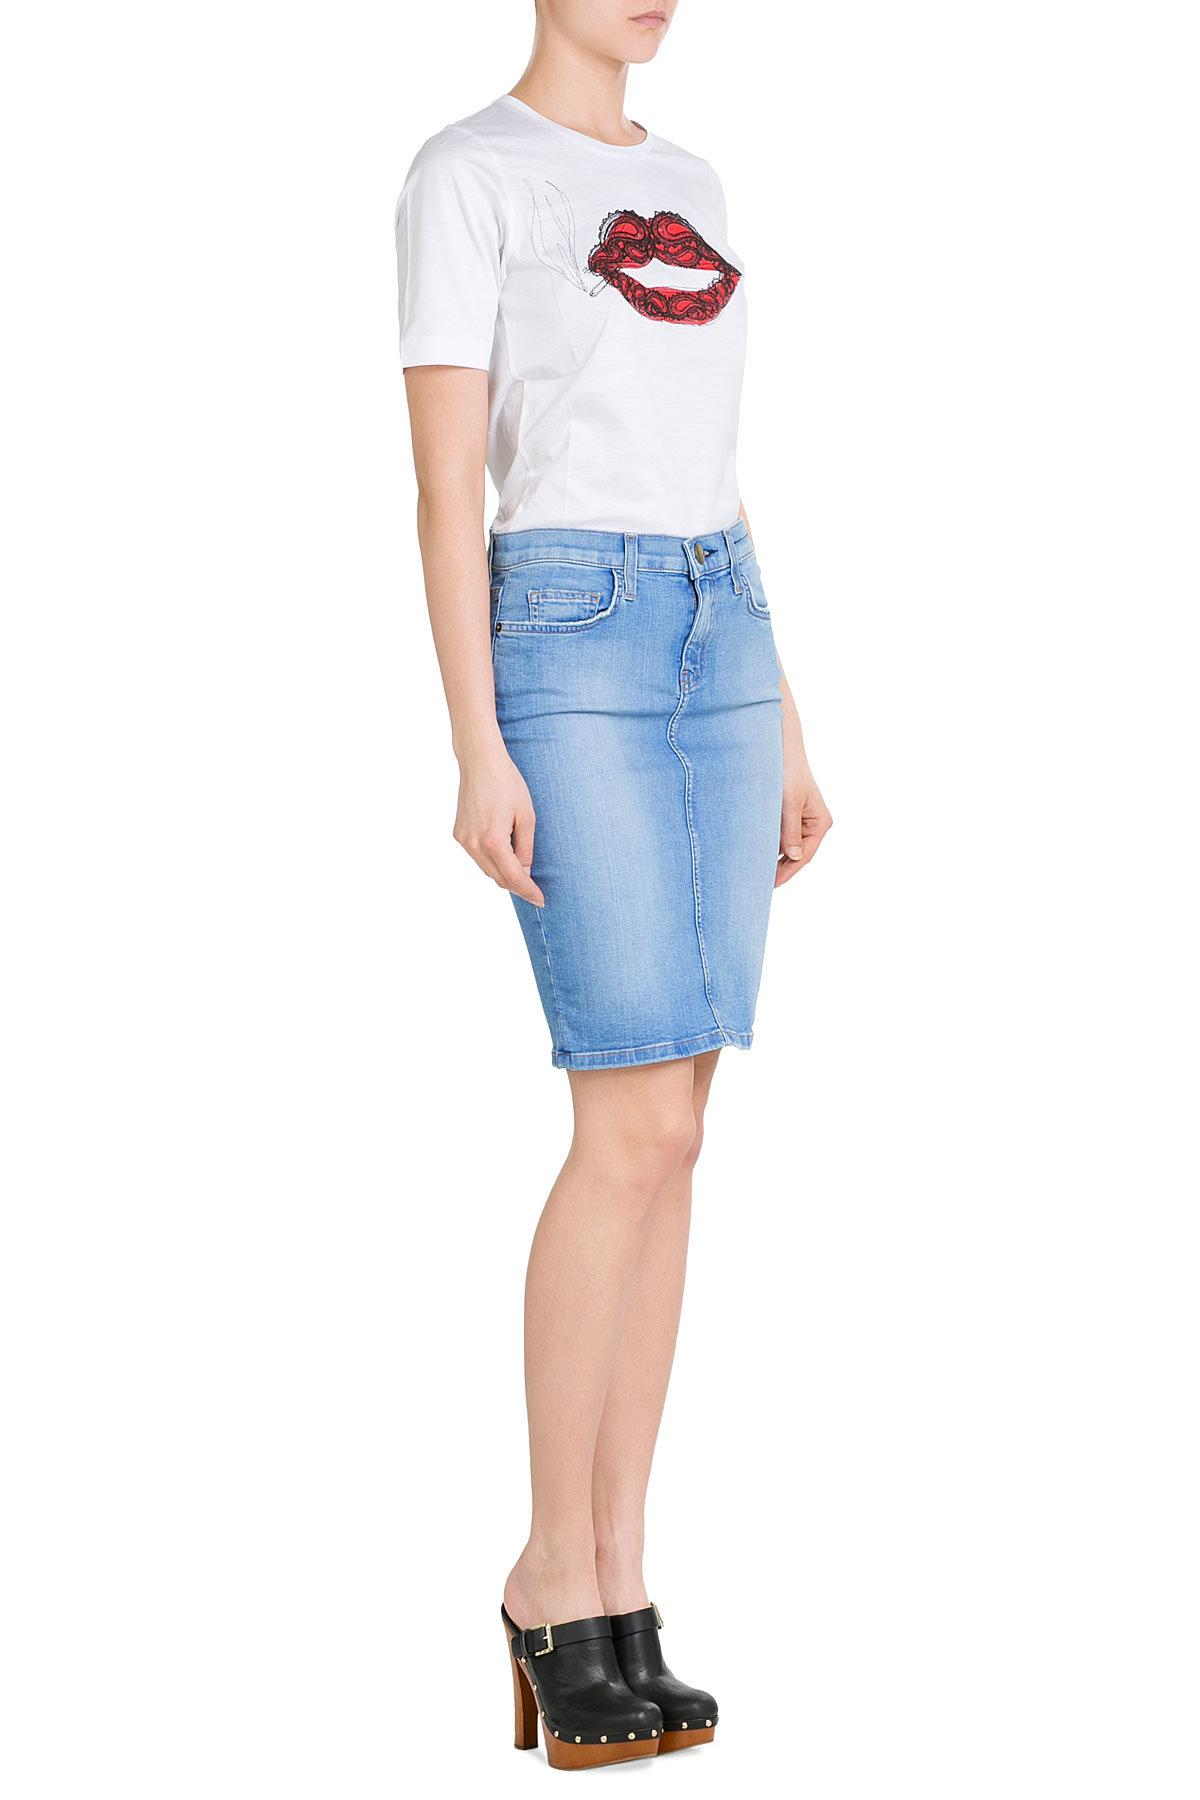 The classic denim skirt is a great companion to a long sleeved sweater or cardigan in a bright color. This fun loving skirt can be a mini skirt, knee length or ankle length, in either pale blue or very dark denim with a buttoned front or zippered closure.